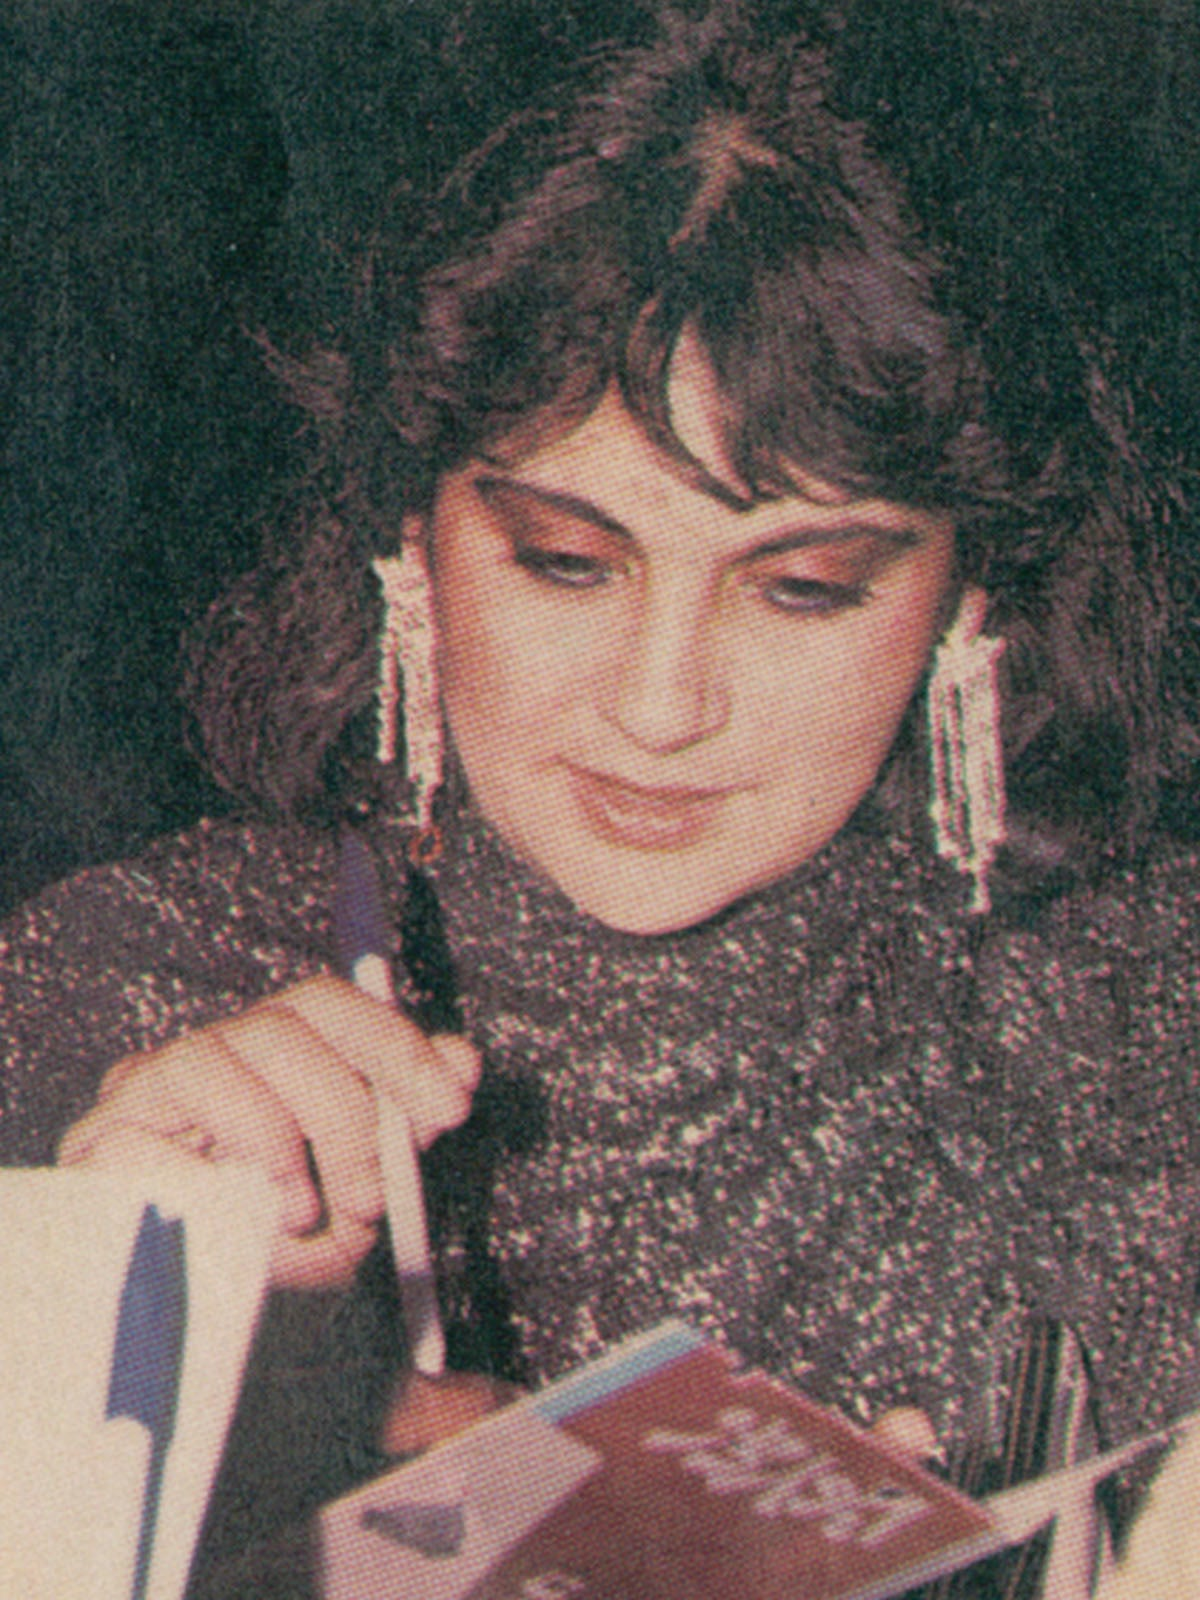 The homecoming: Shahnaz Sheikh